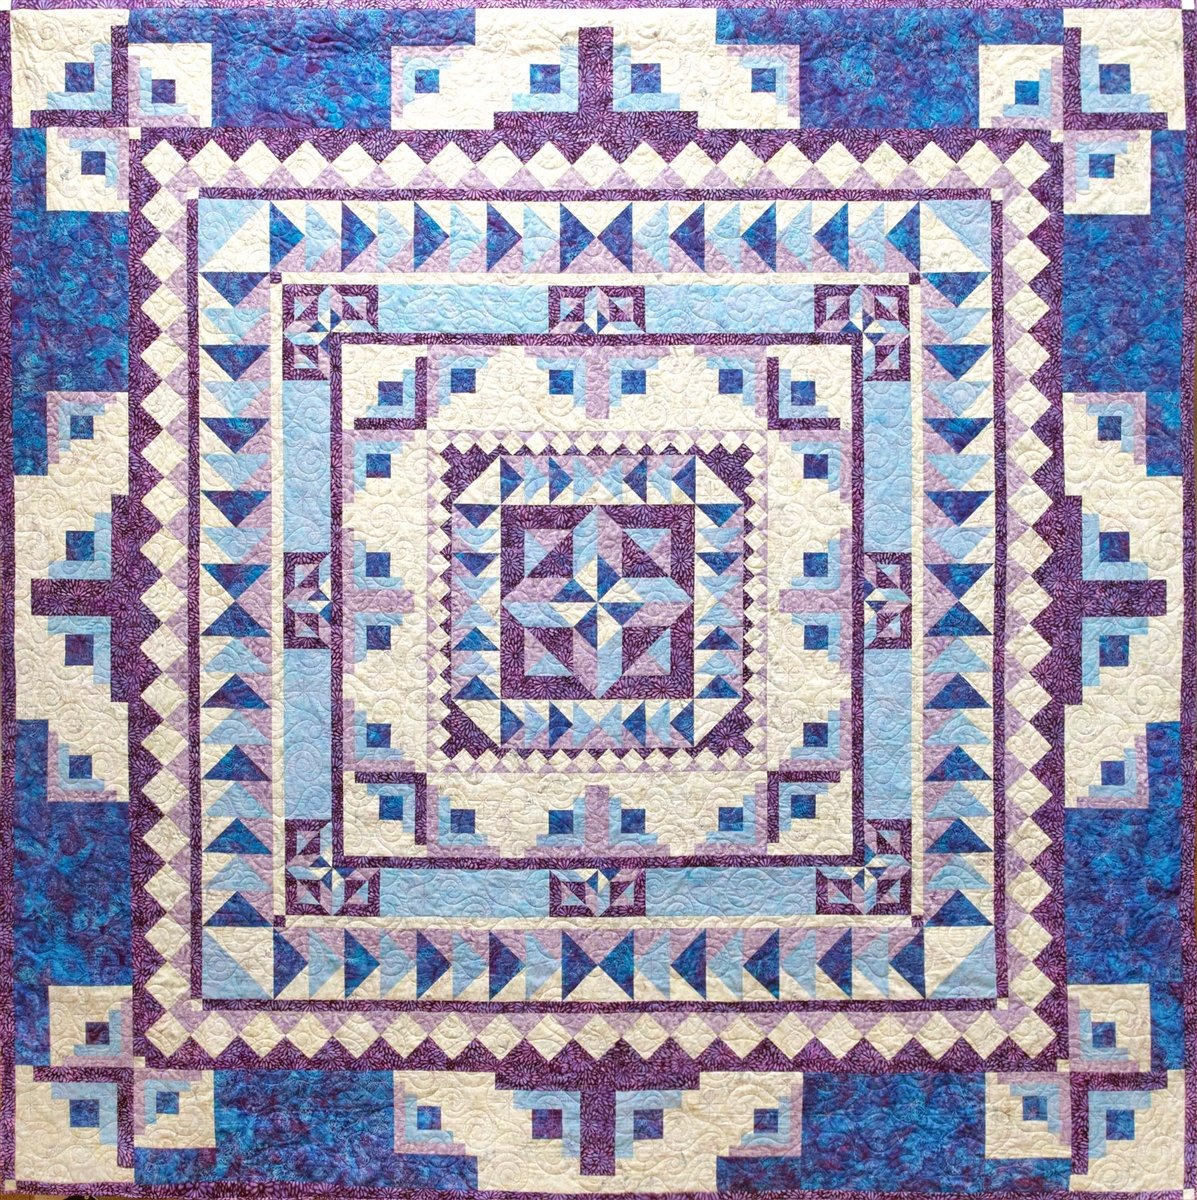 Crystal Memories by Stitches from Heaven-using Island Batiks- Quilt Kit 100x100